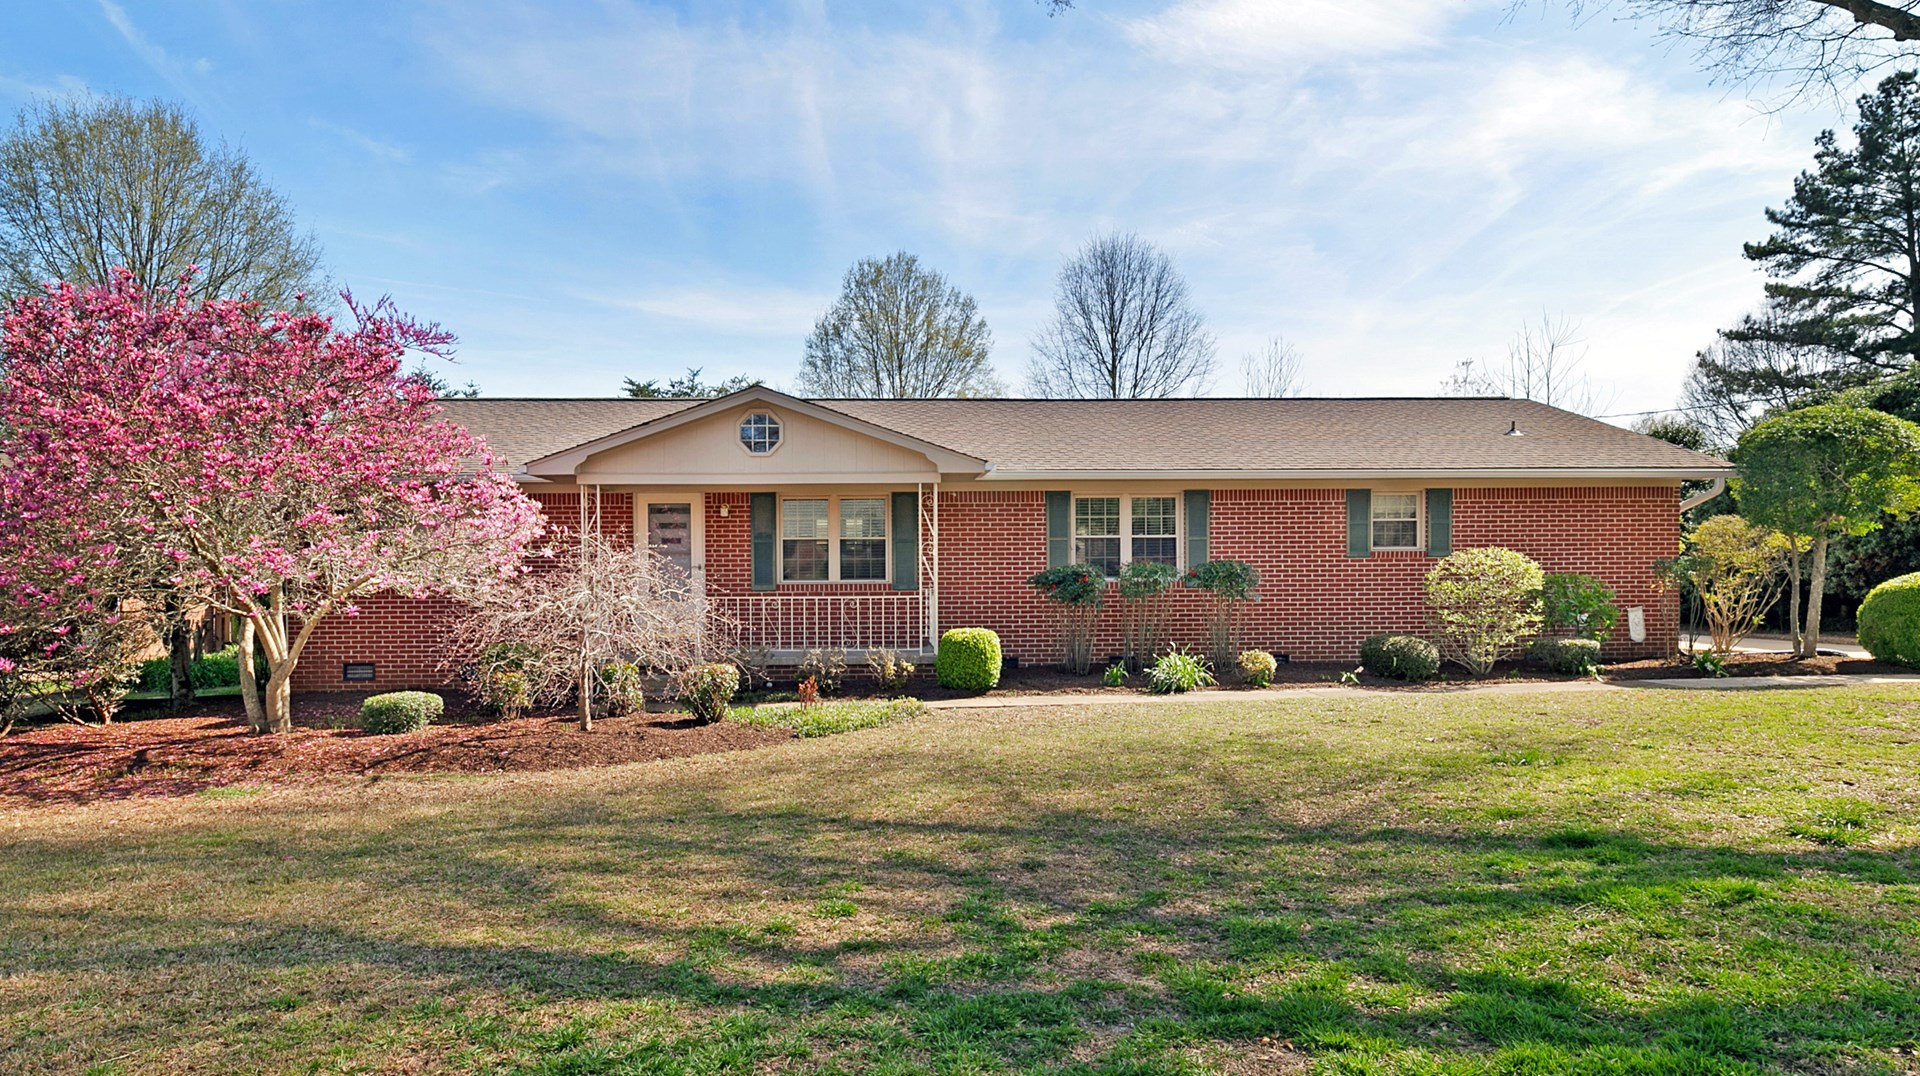 Brick Home For Sale w/ Large In-ground Pool, Great Location